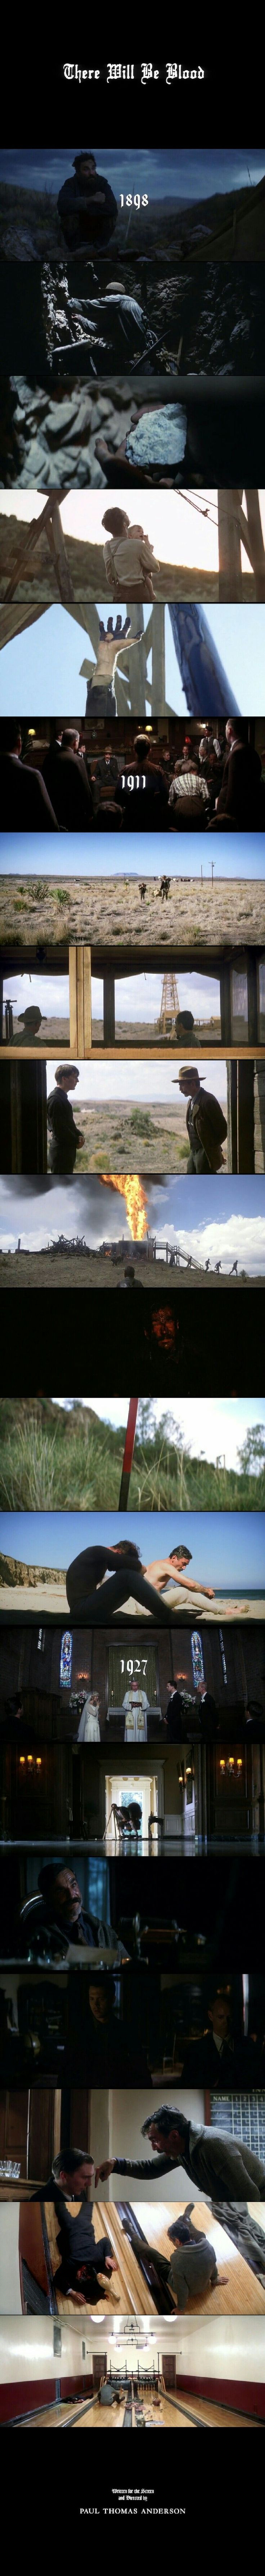 There Will Be Blood (2007) Directed by Paul Thomas Anderson. Cinematography by Robert Elswit.